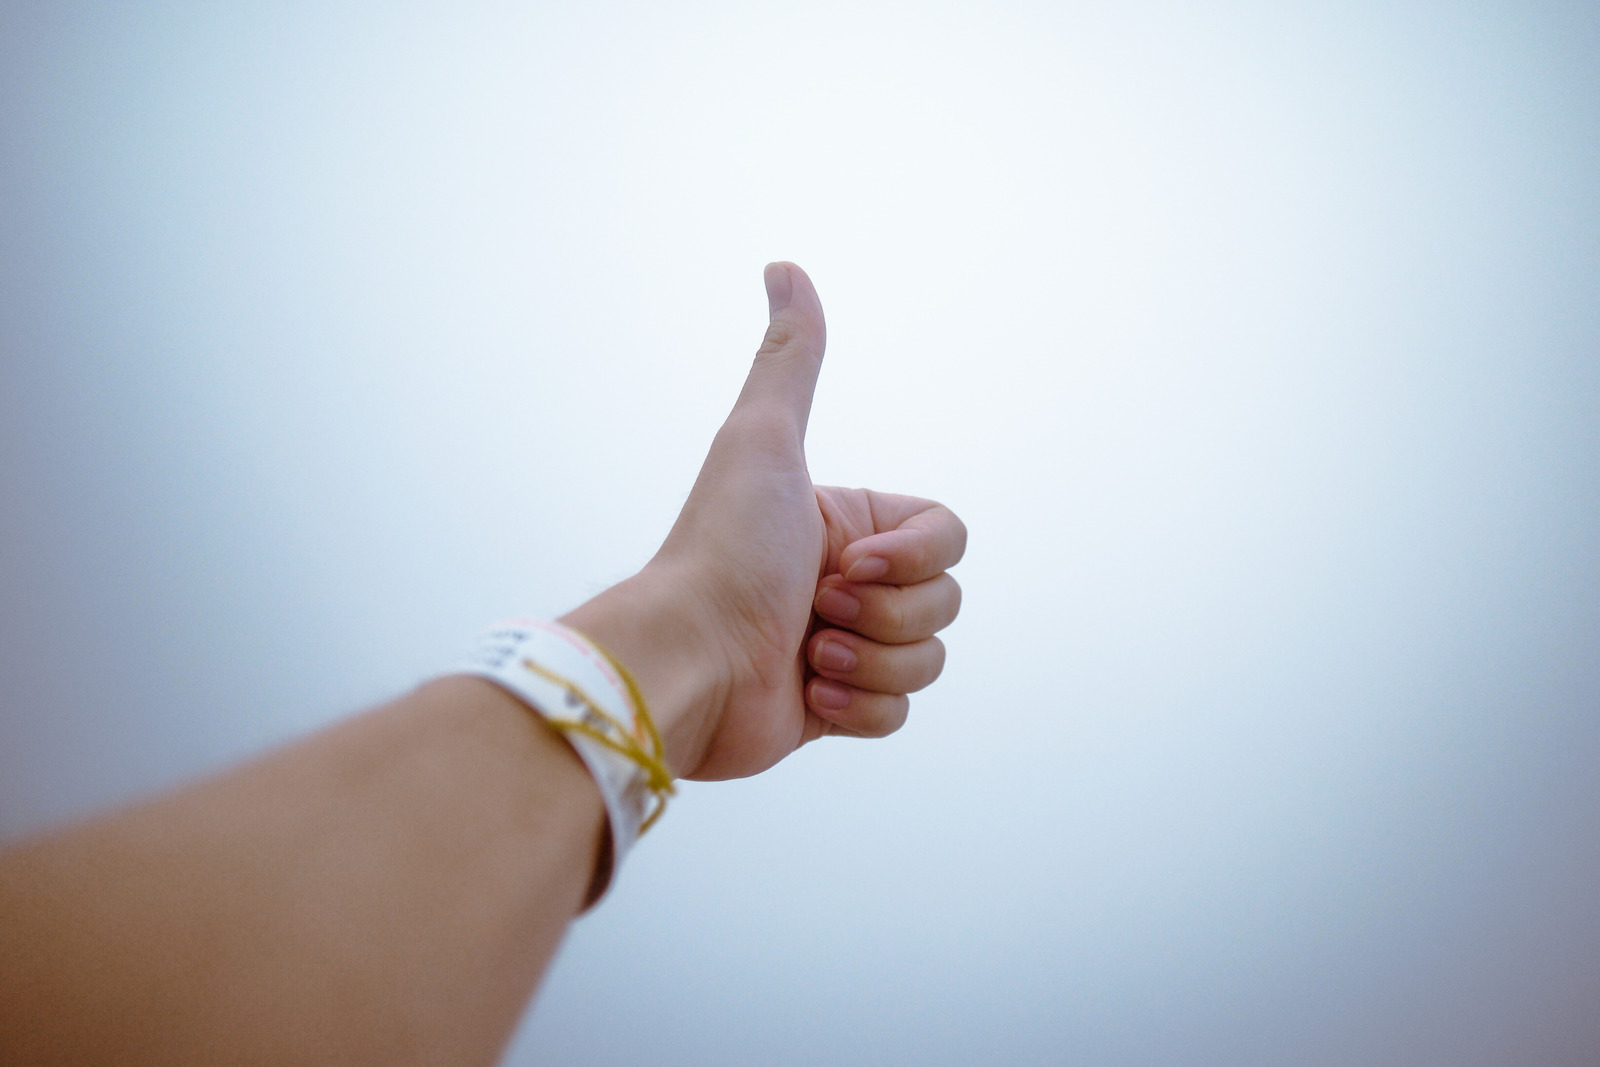 White hand held out in front of body, with a thumb up.